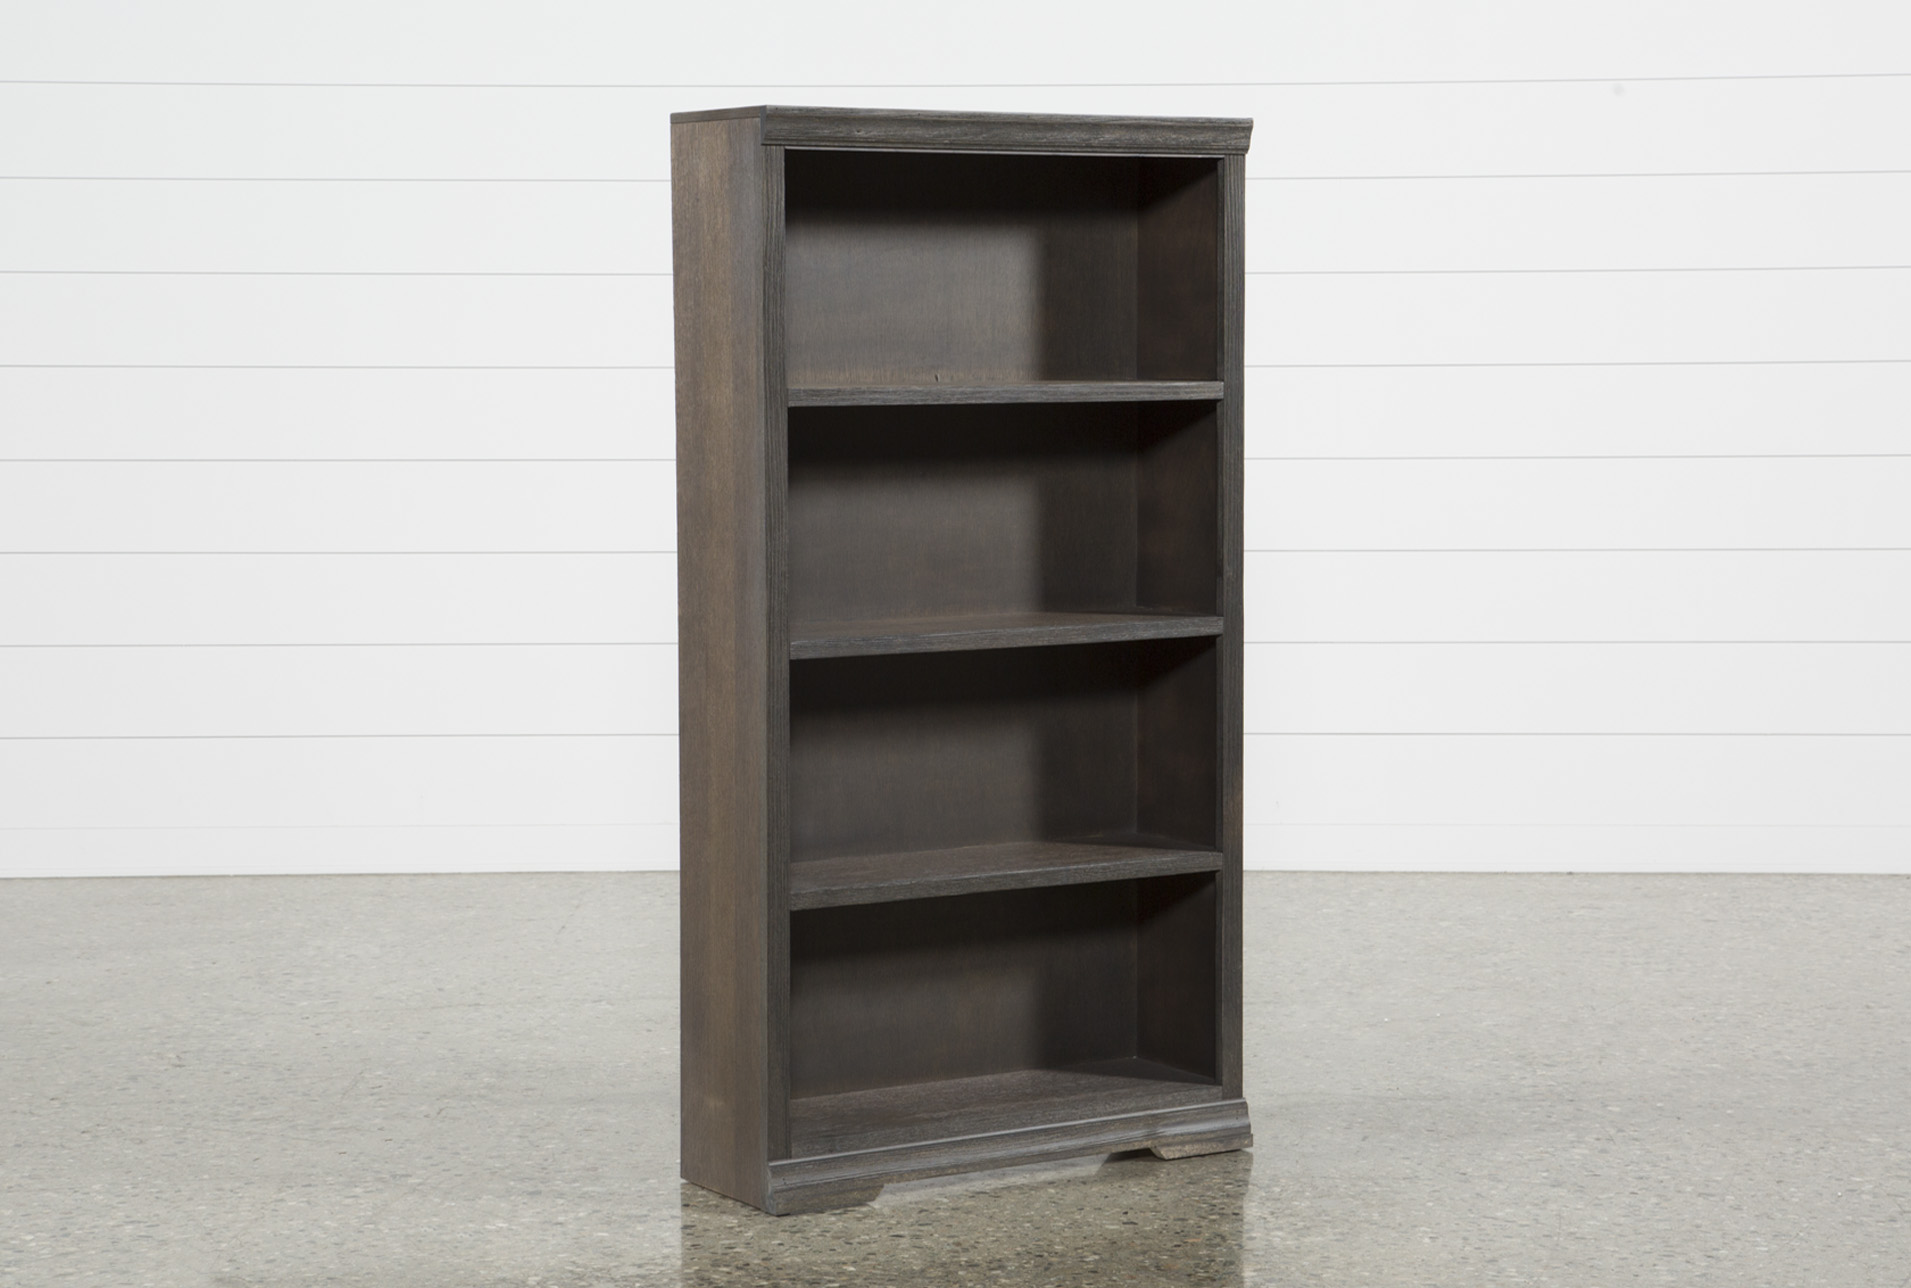 Belford 60 Inch Bookcase Bookcases for Your